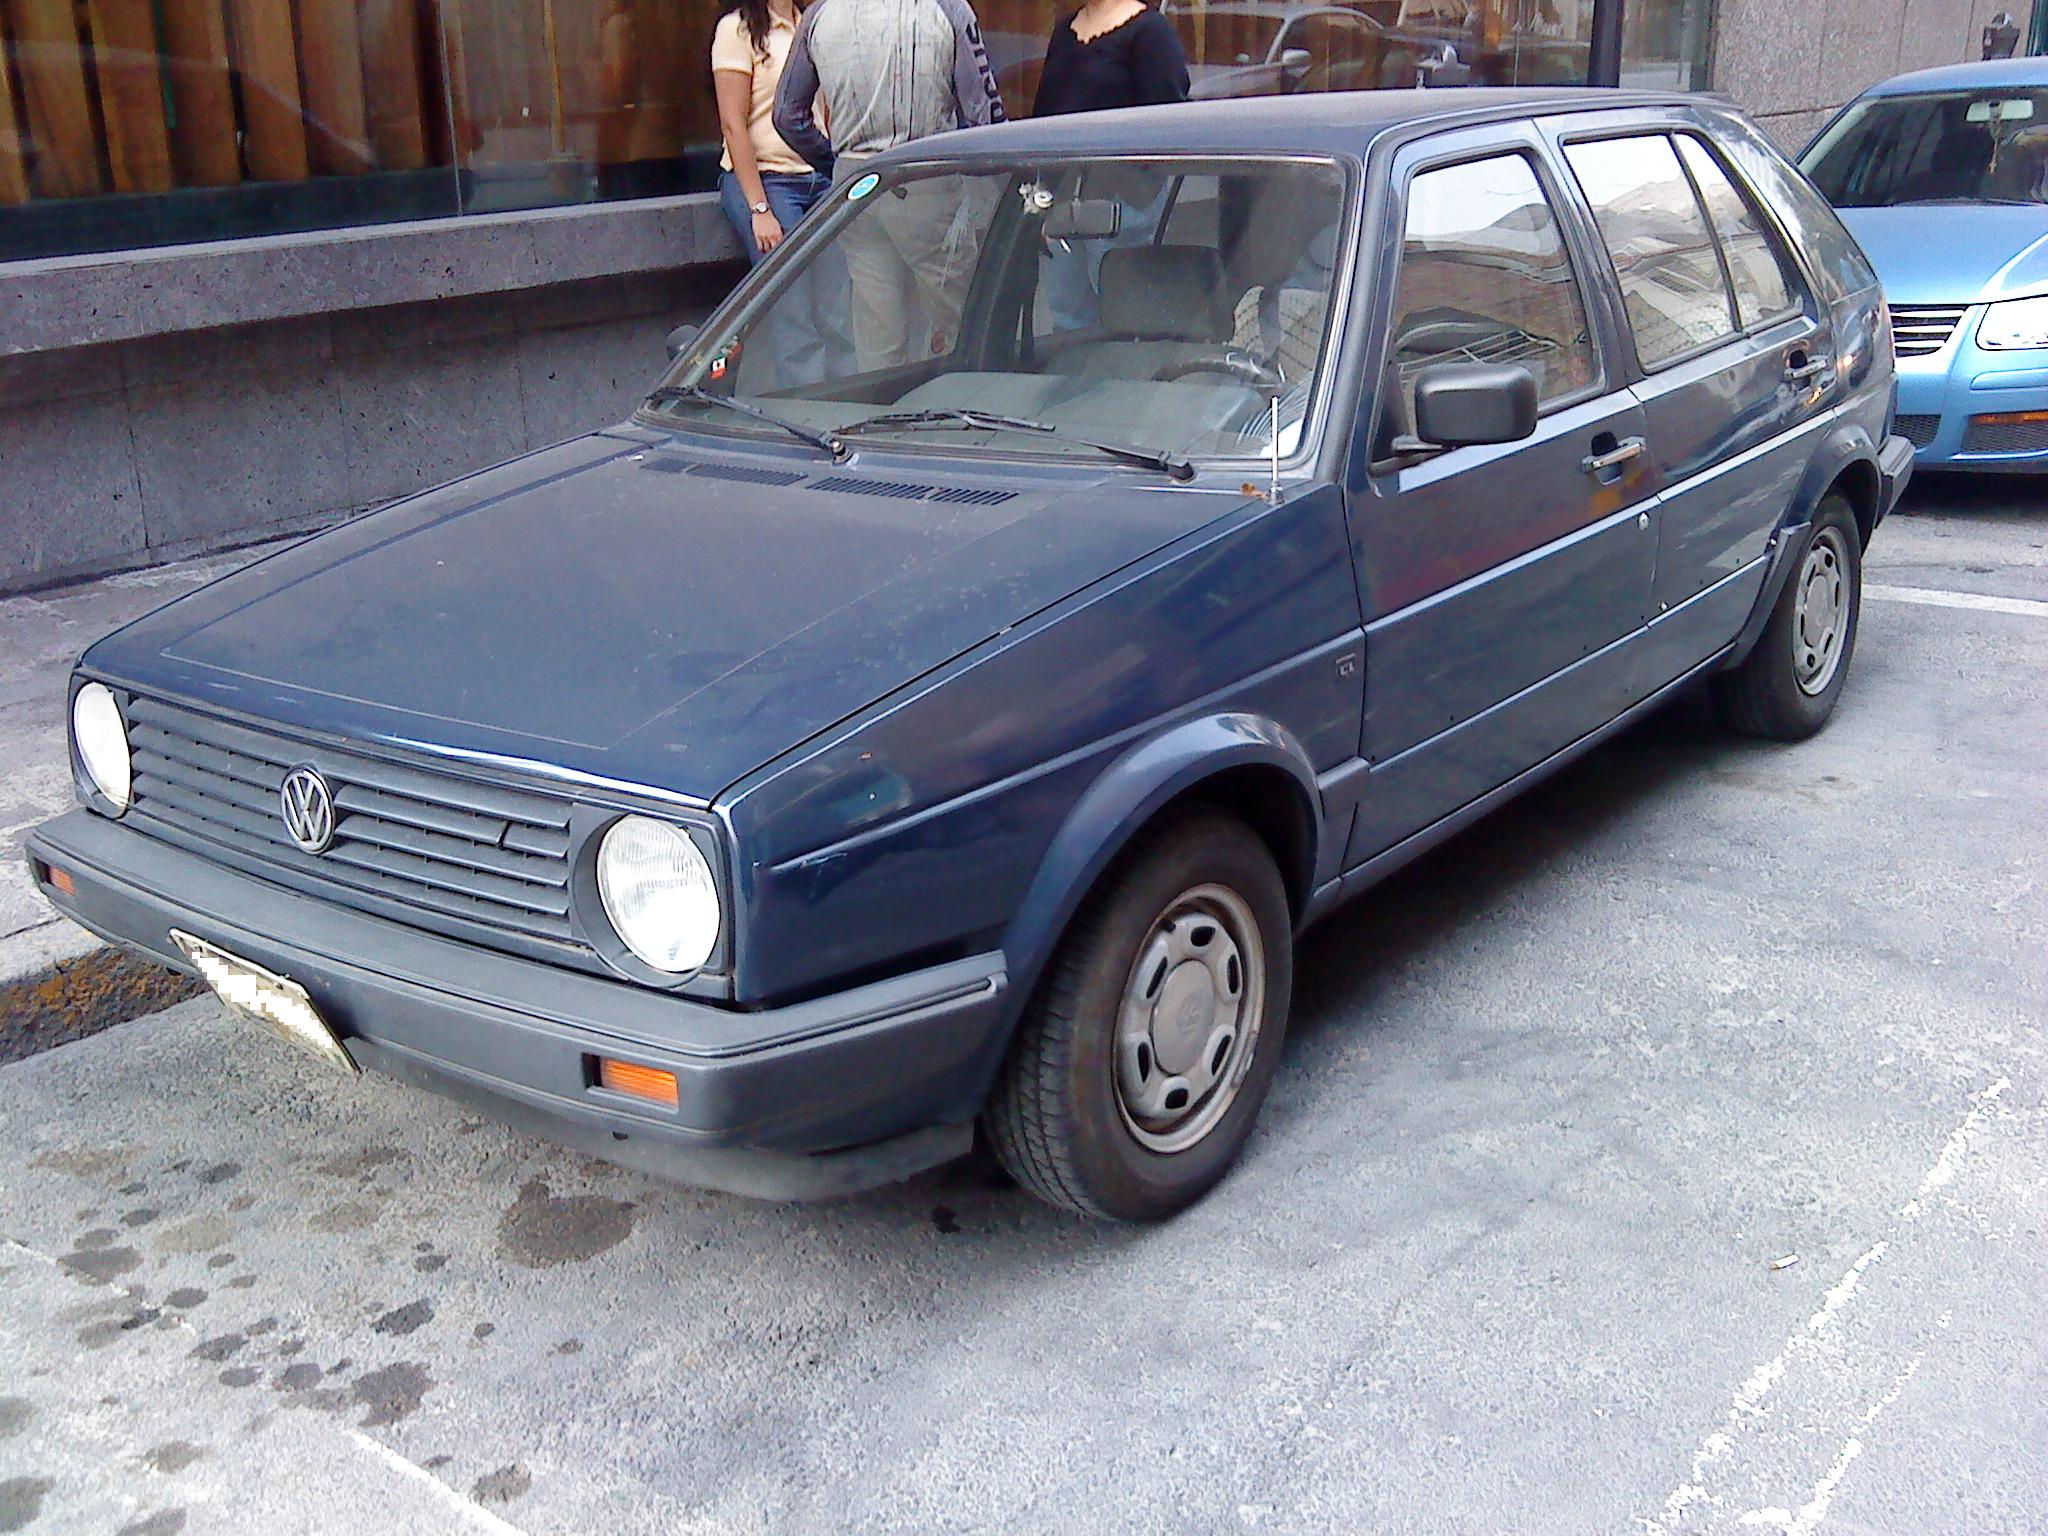 Description Volkswagen Golf CL 1988 Azul Marino ftl.jpg